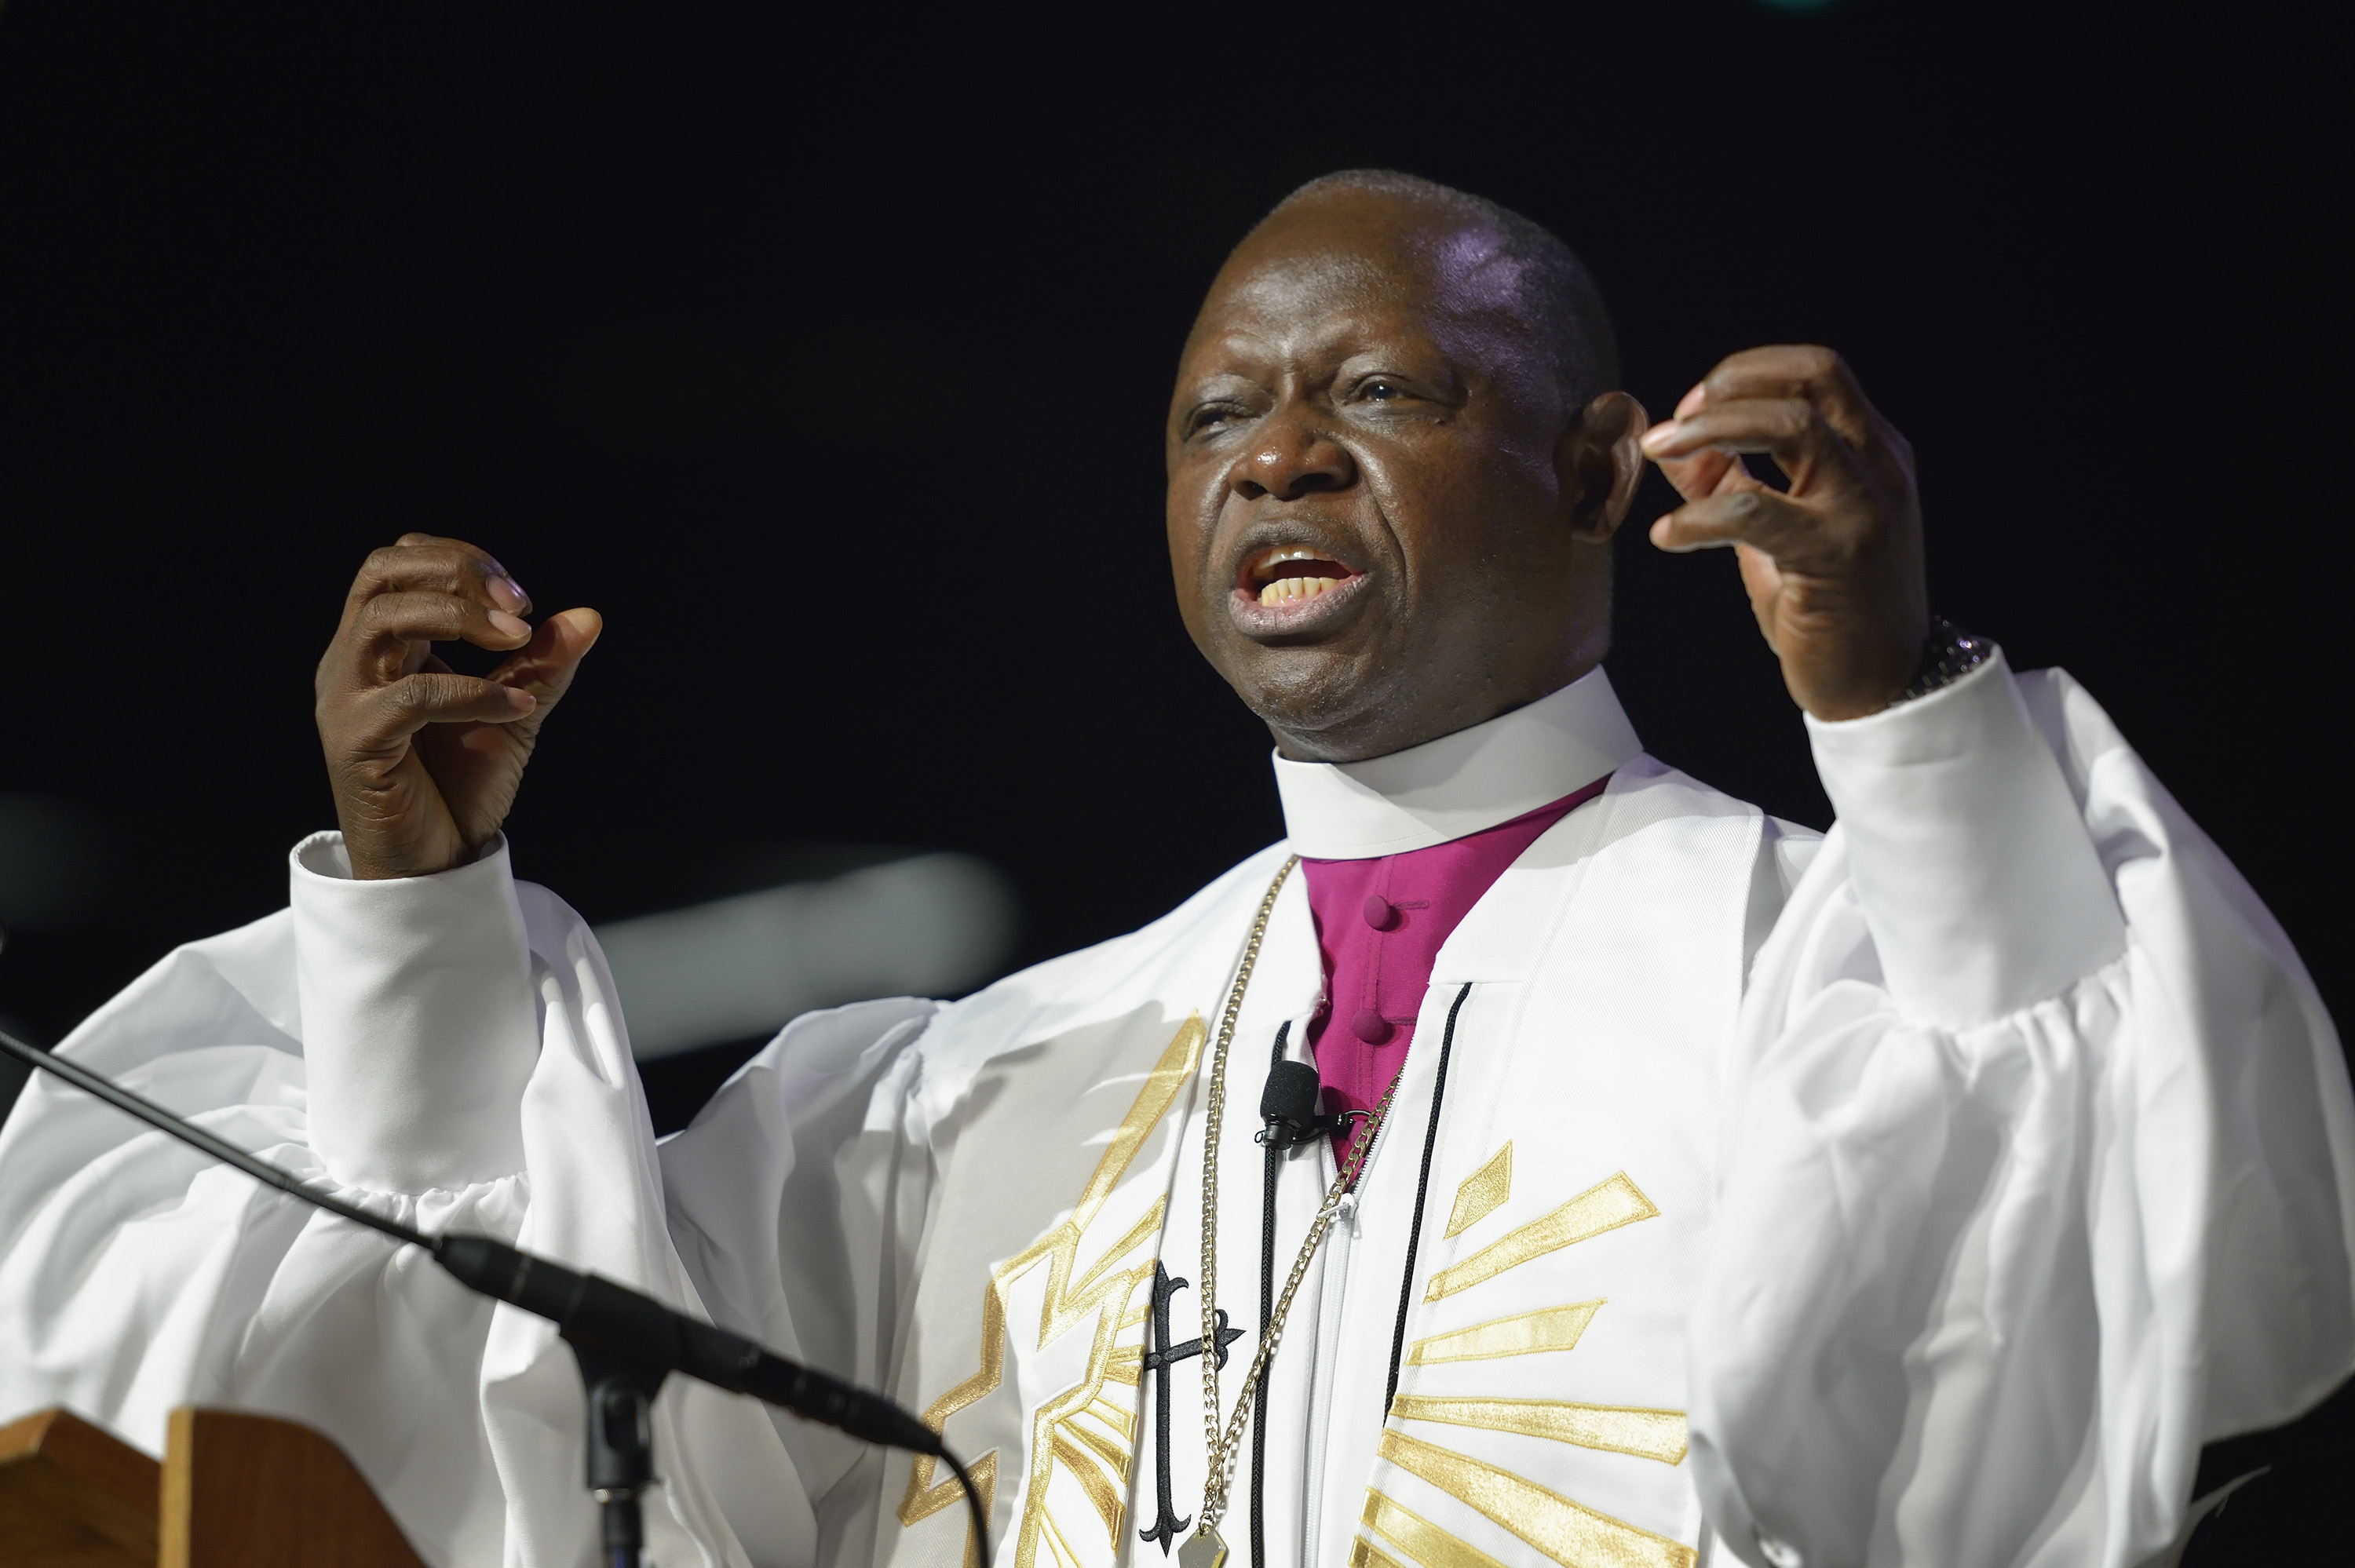 Bishop John Yambasu gives the sermon during morning worship at the 2016 United Methodist General Conference in Portland, Ore. File photo by Mike DuBose, UMNS.